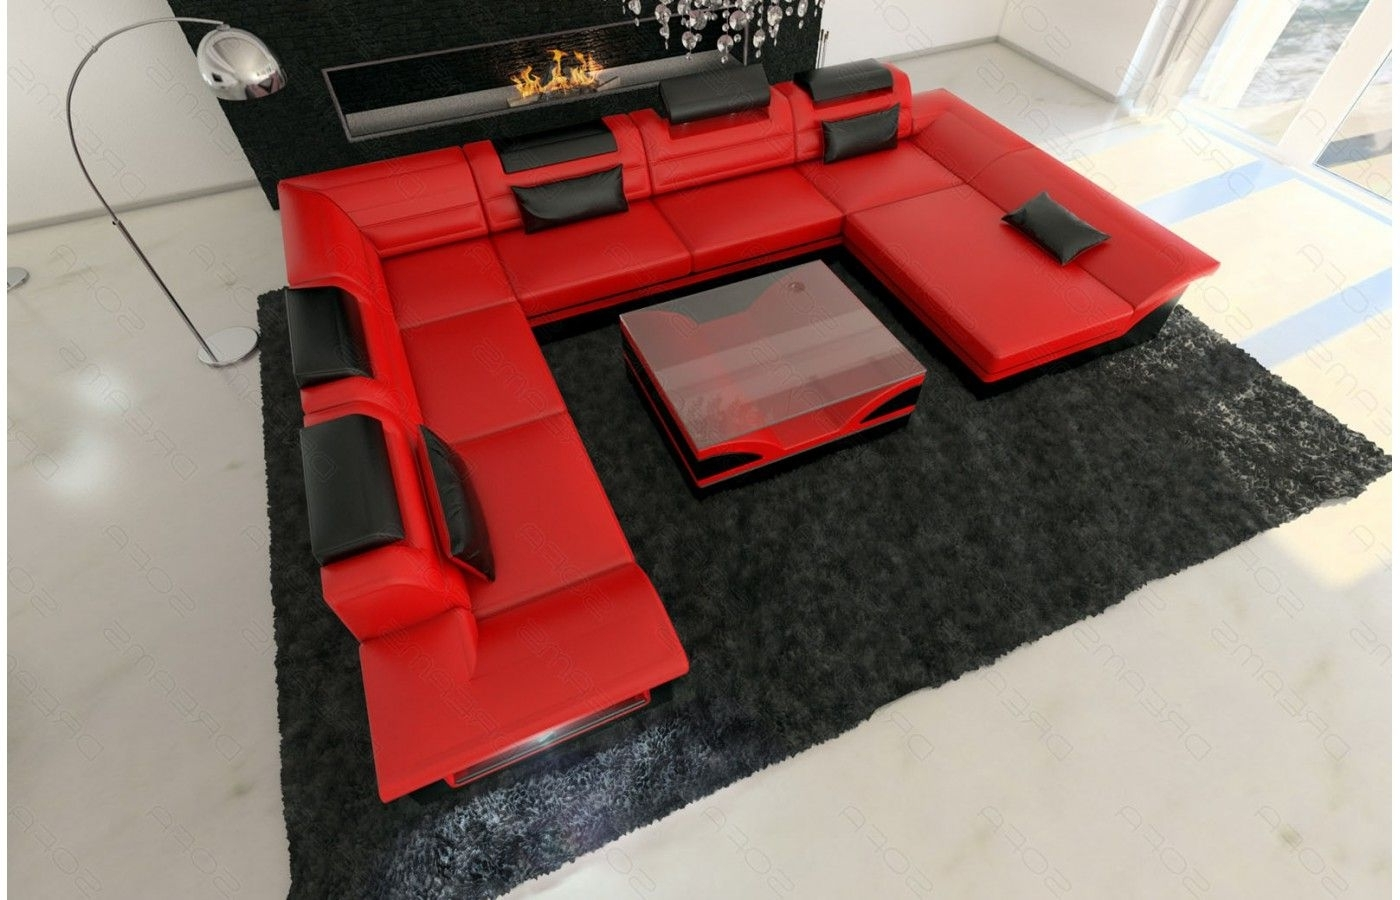 Famous Red And Black Sofas With Regard To Wohnlandschaft Enzo Xxl In Rot Schwarz – Exklusive Designer Möbel (View 14 of 15)